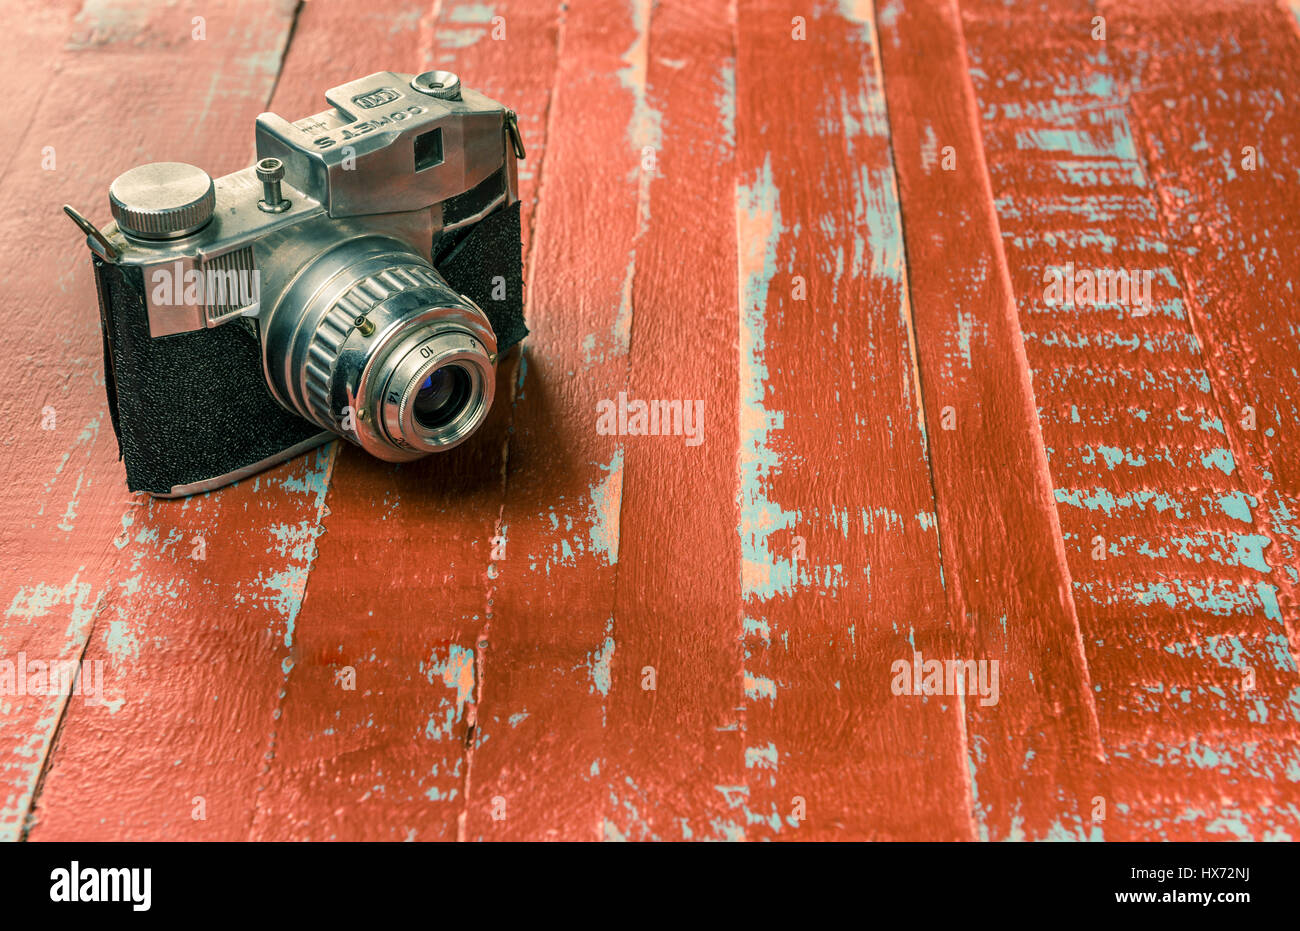 Bencini Comet S, 127 roll film camera, c1950 on painted blue and red wooden boards - Stock Image